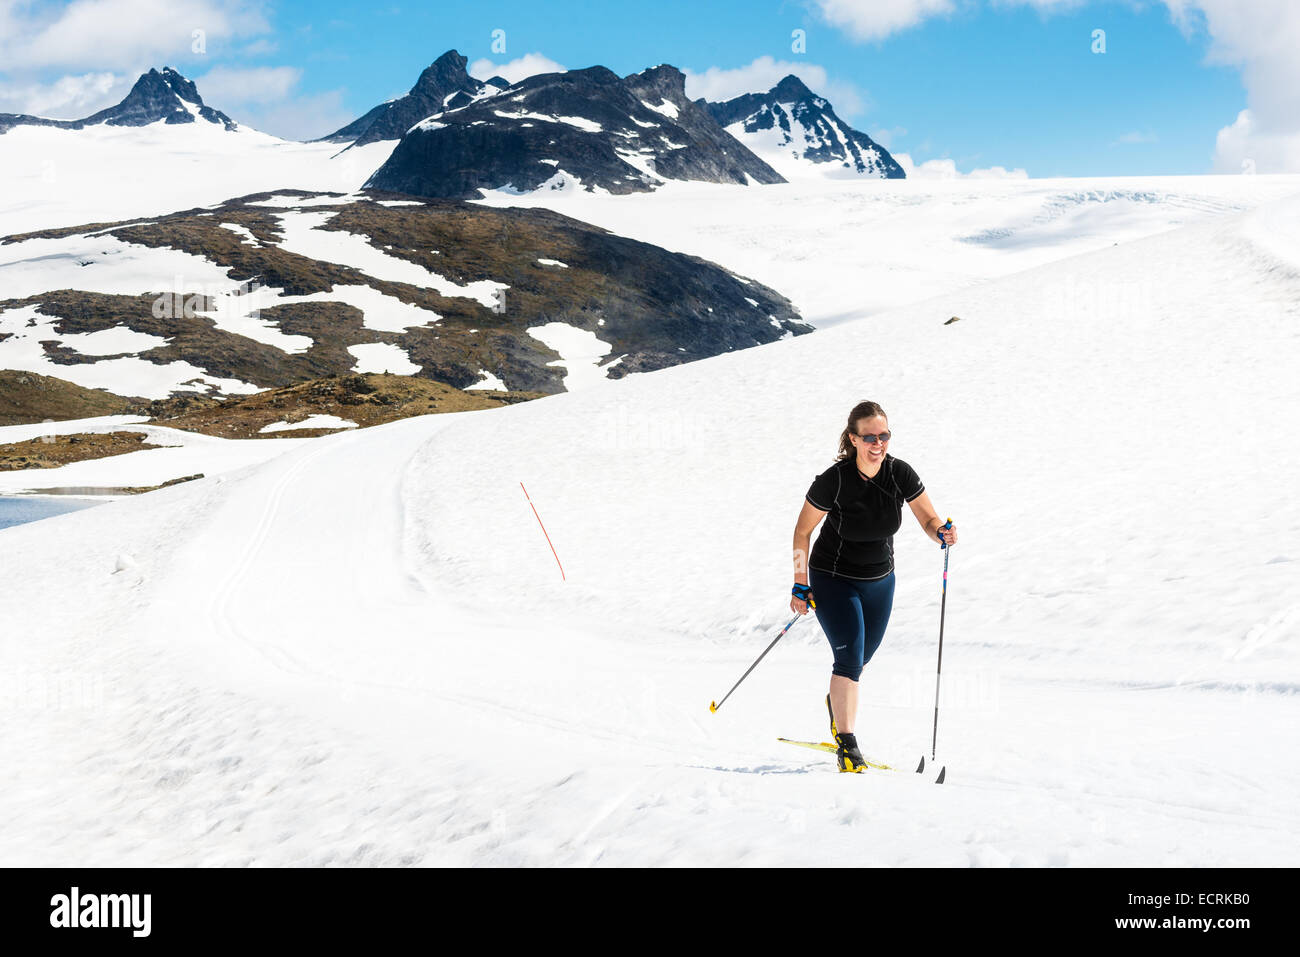 Woman in summer clothes skiing at the top of a mountain - Stock Image